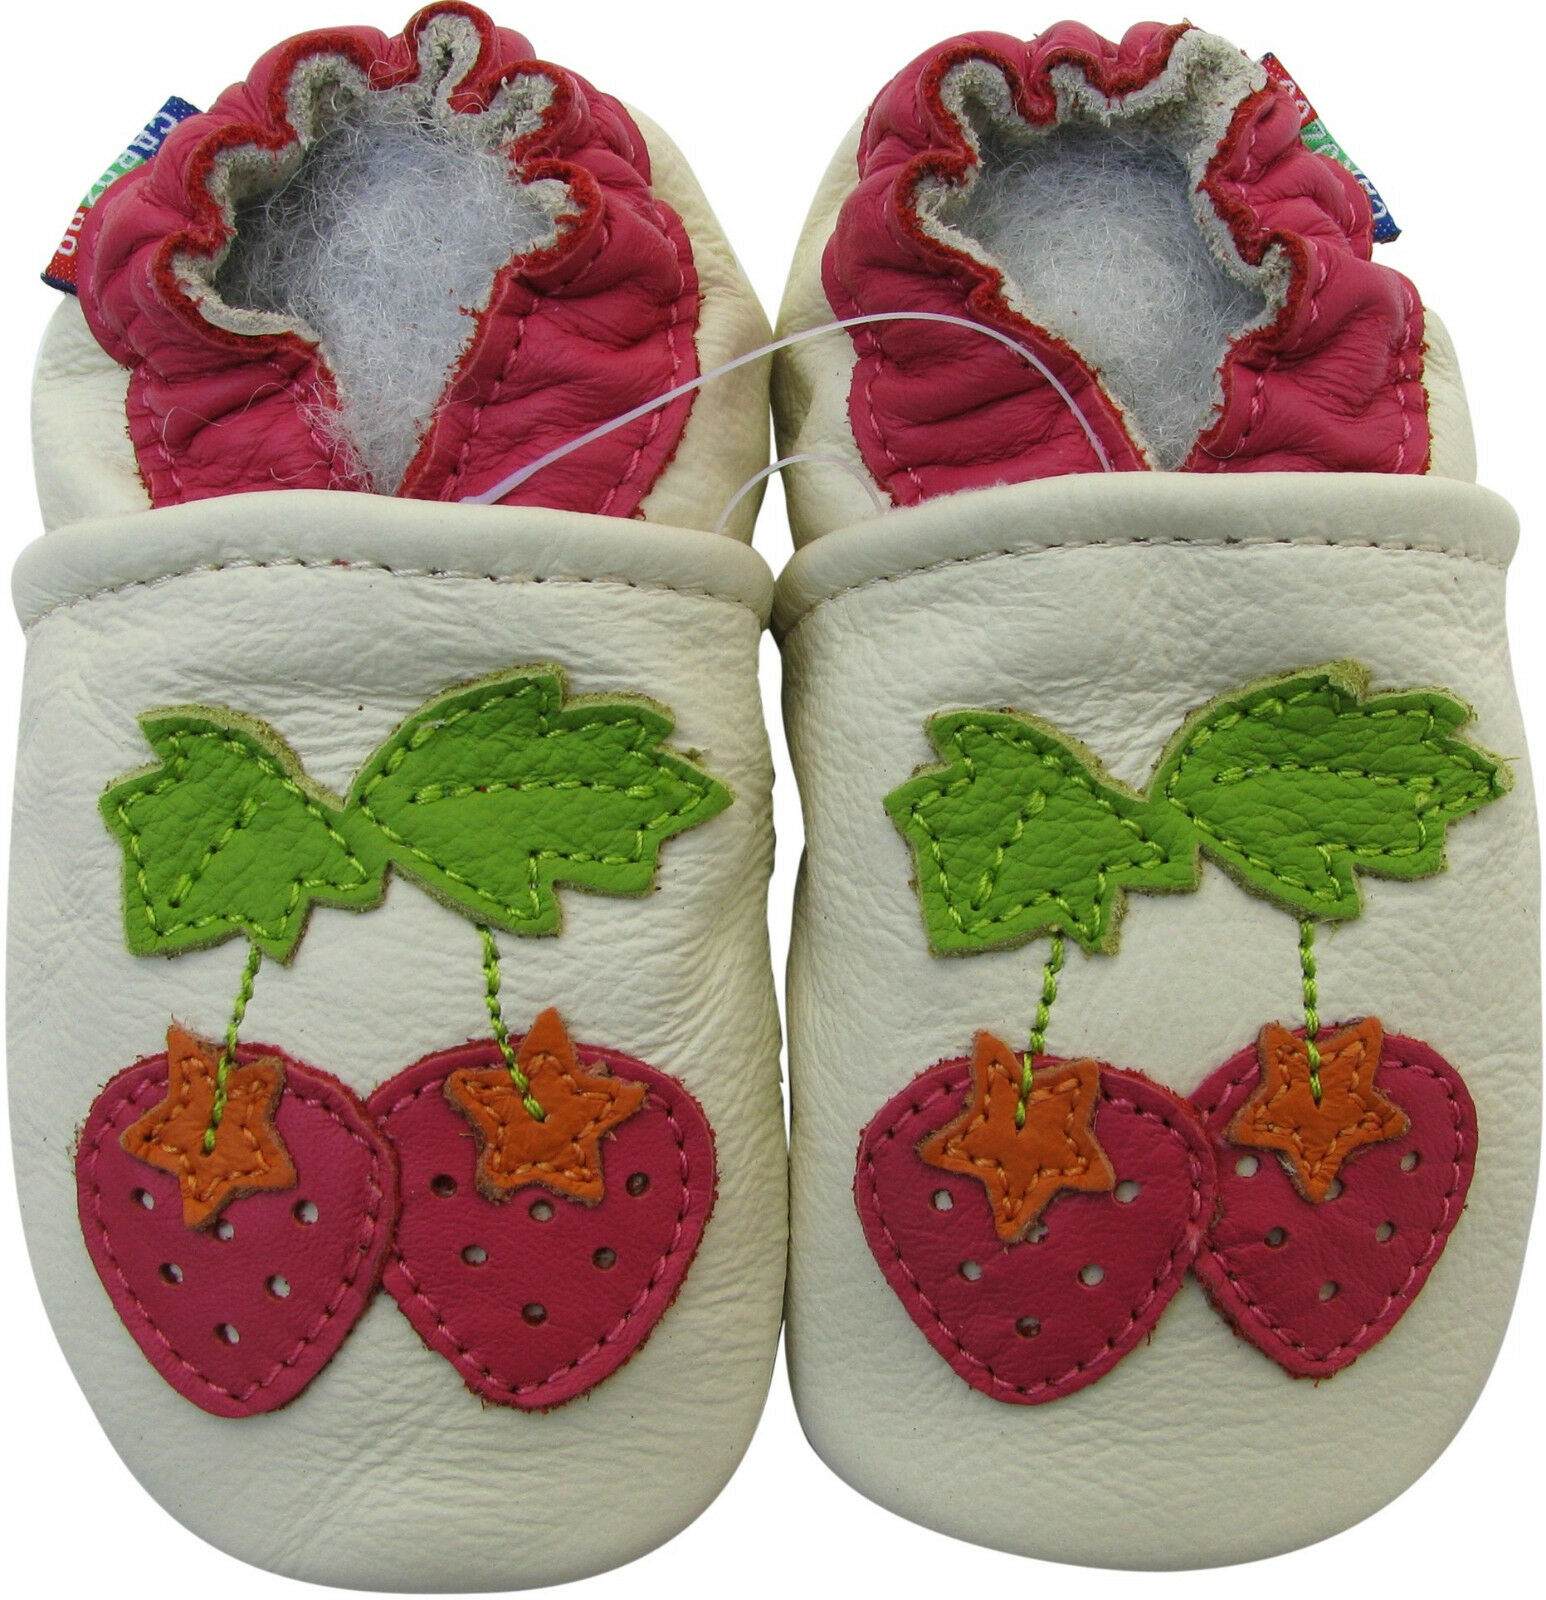 Carozoo Soft Sole Leather Baby Shoes Strawberry Cream 12 18m